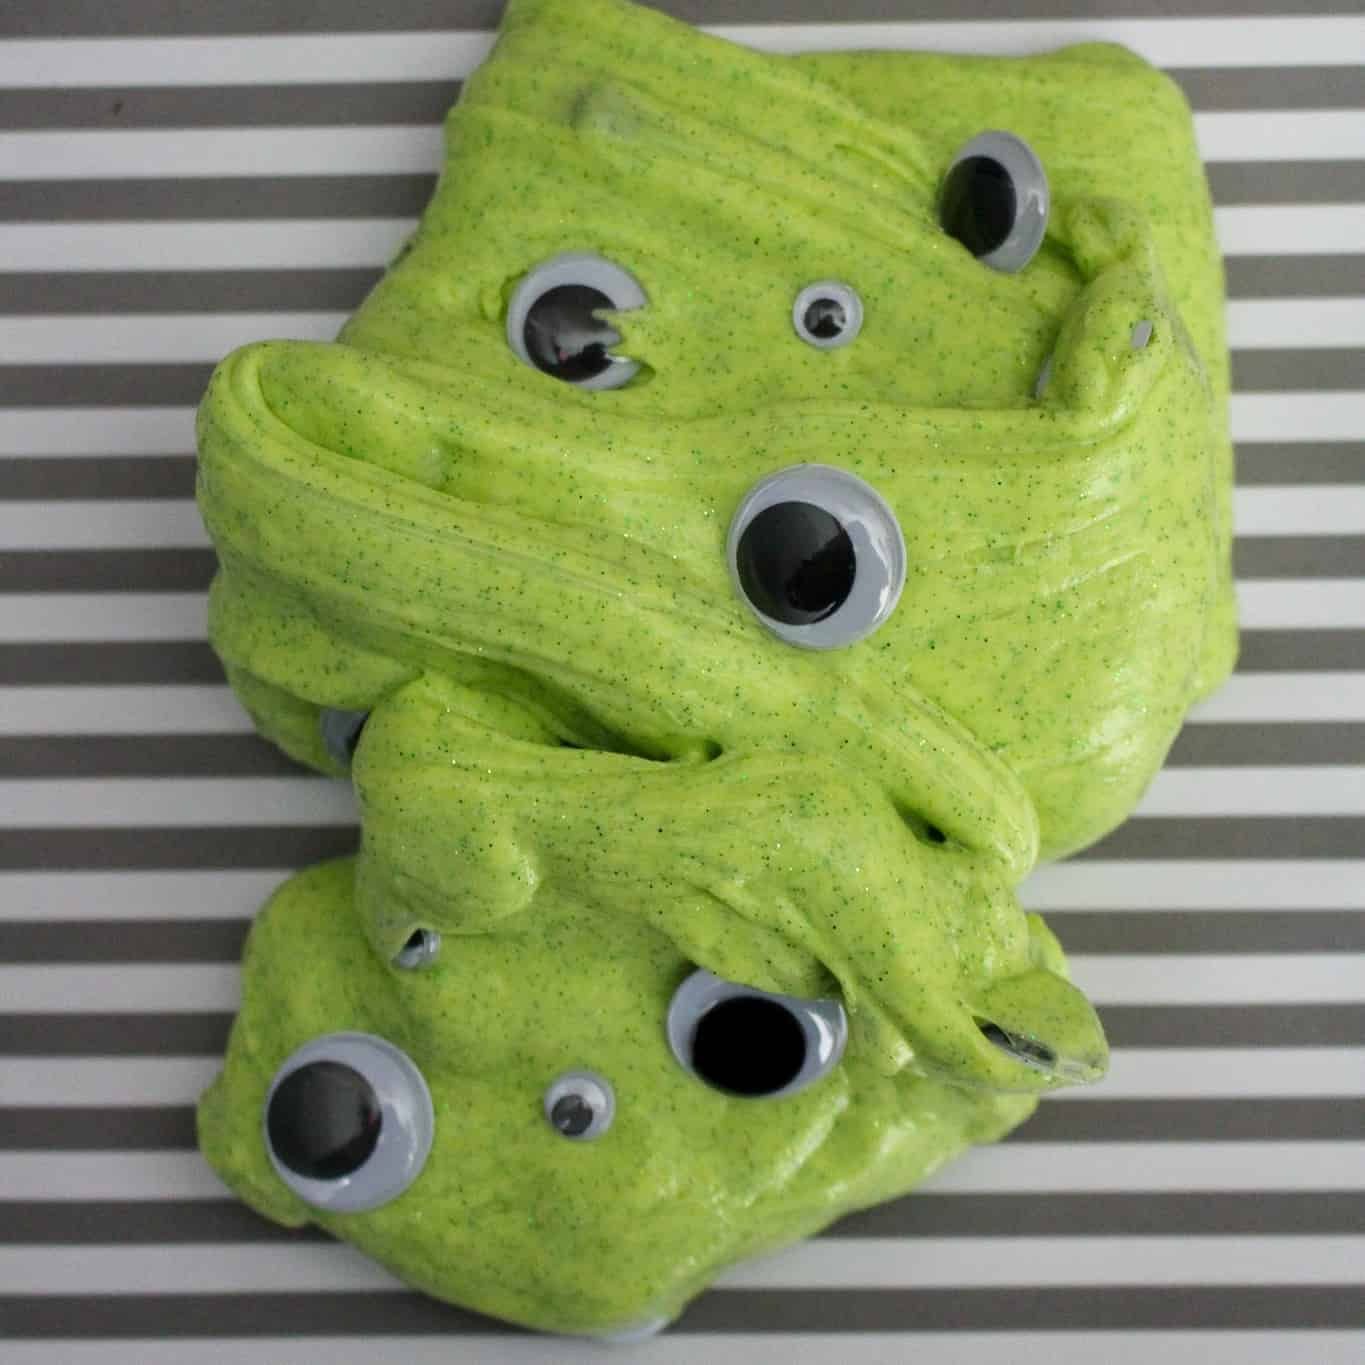 How to make googly eye slime